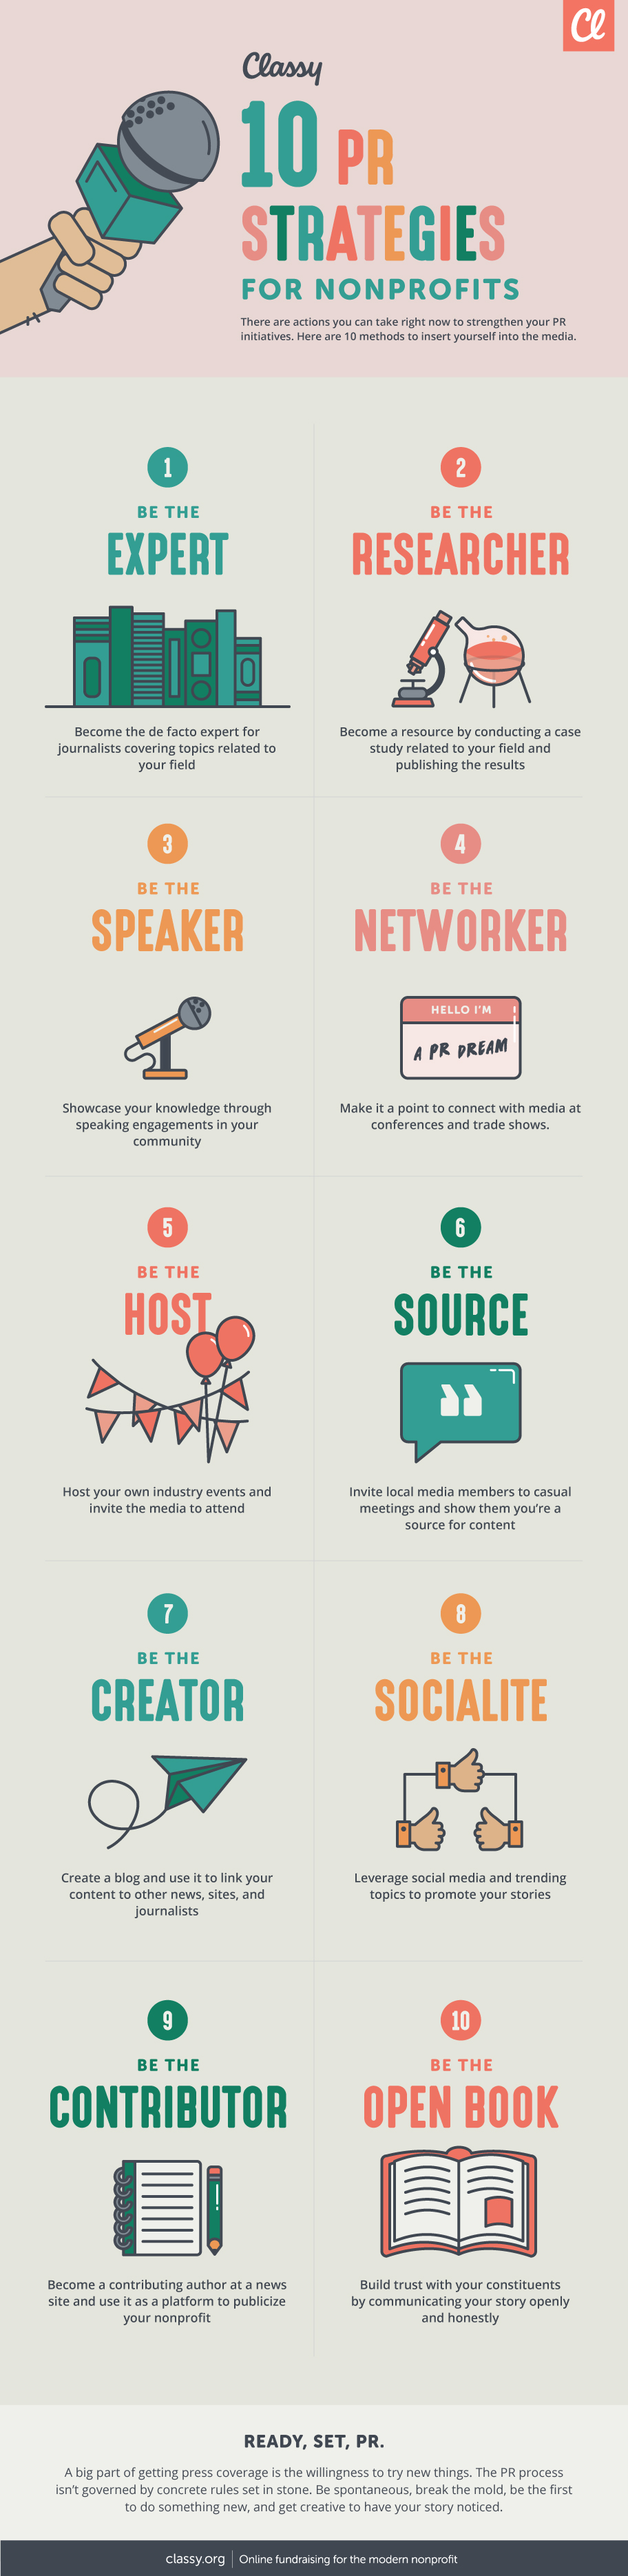 PR strategies infographic